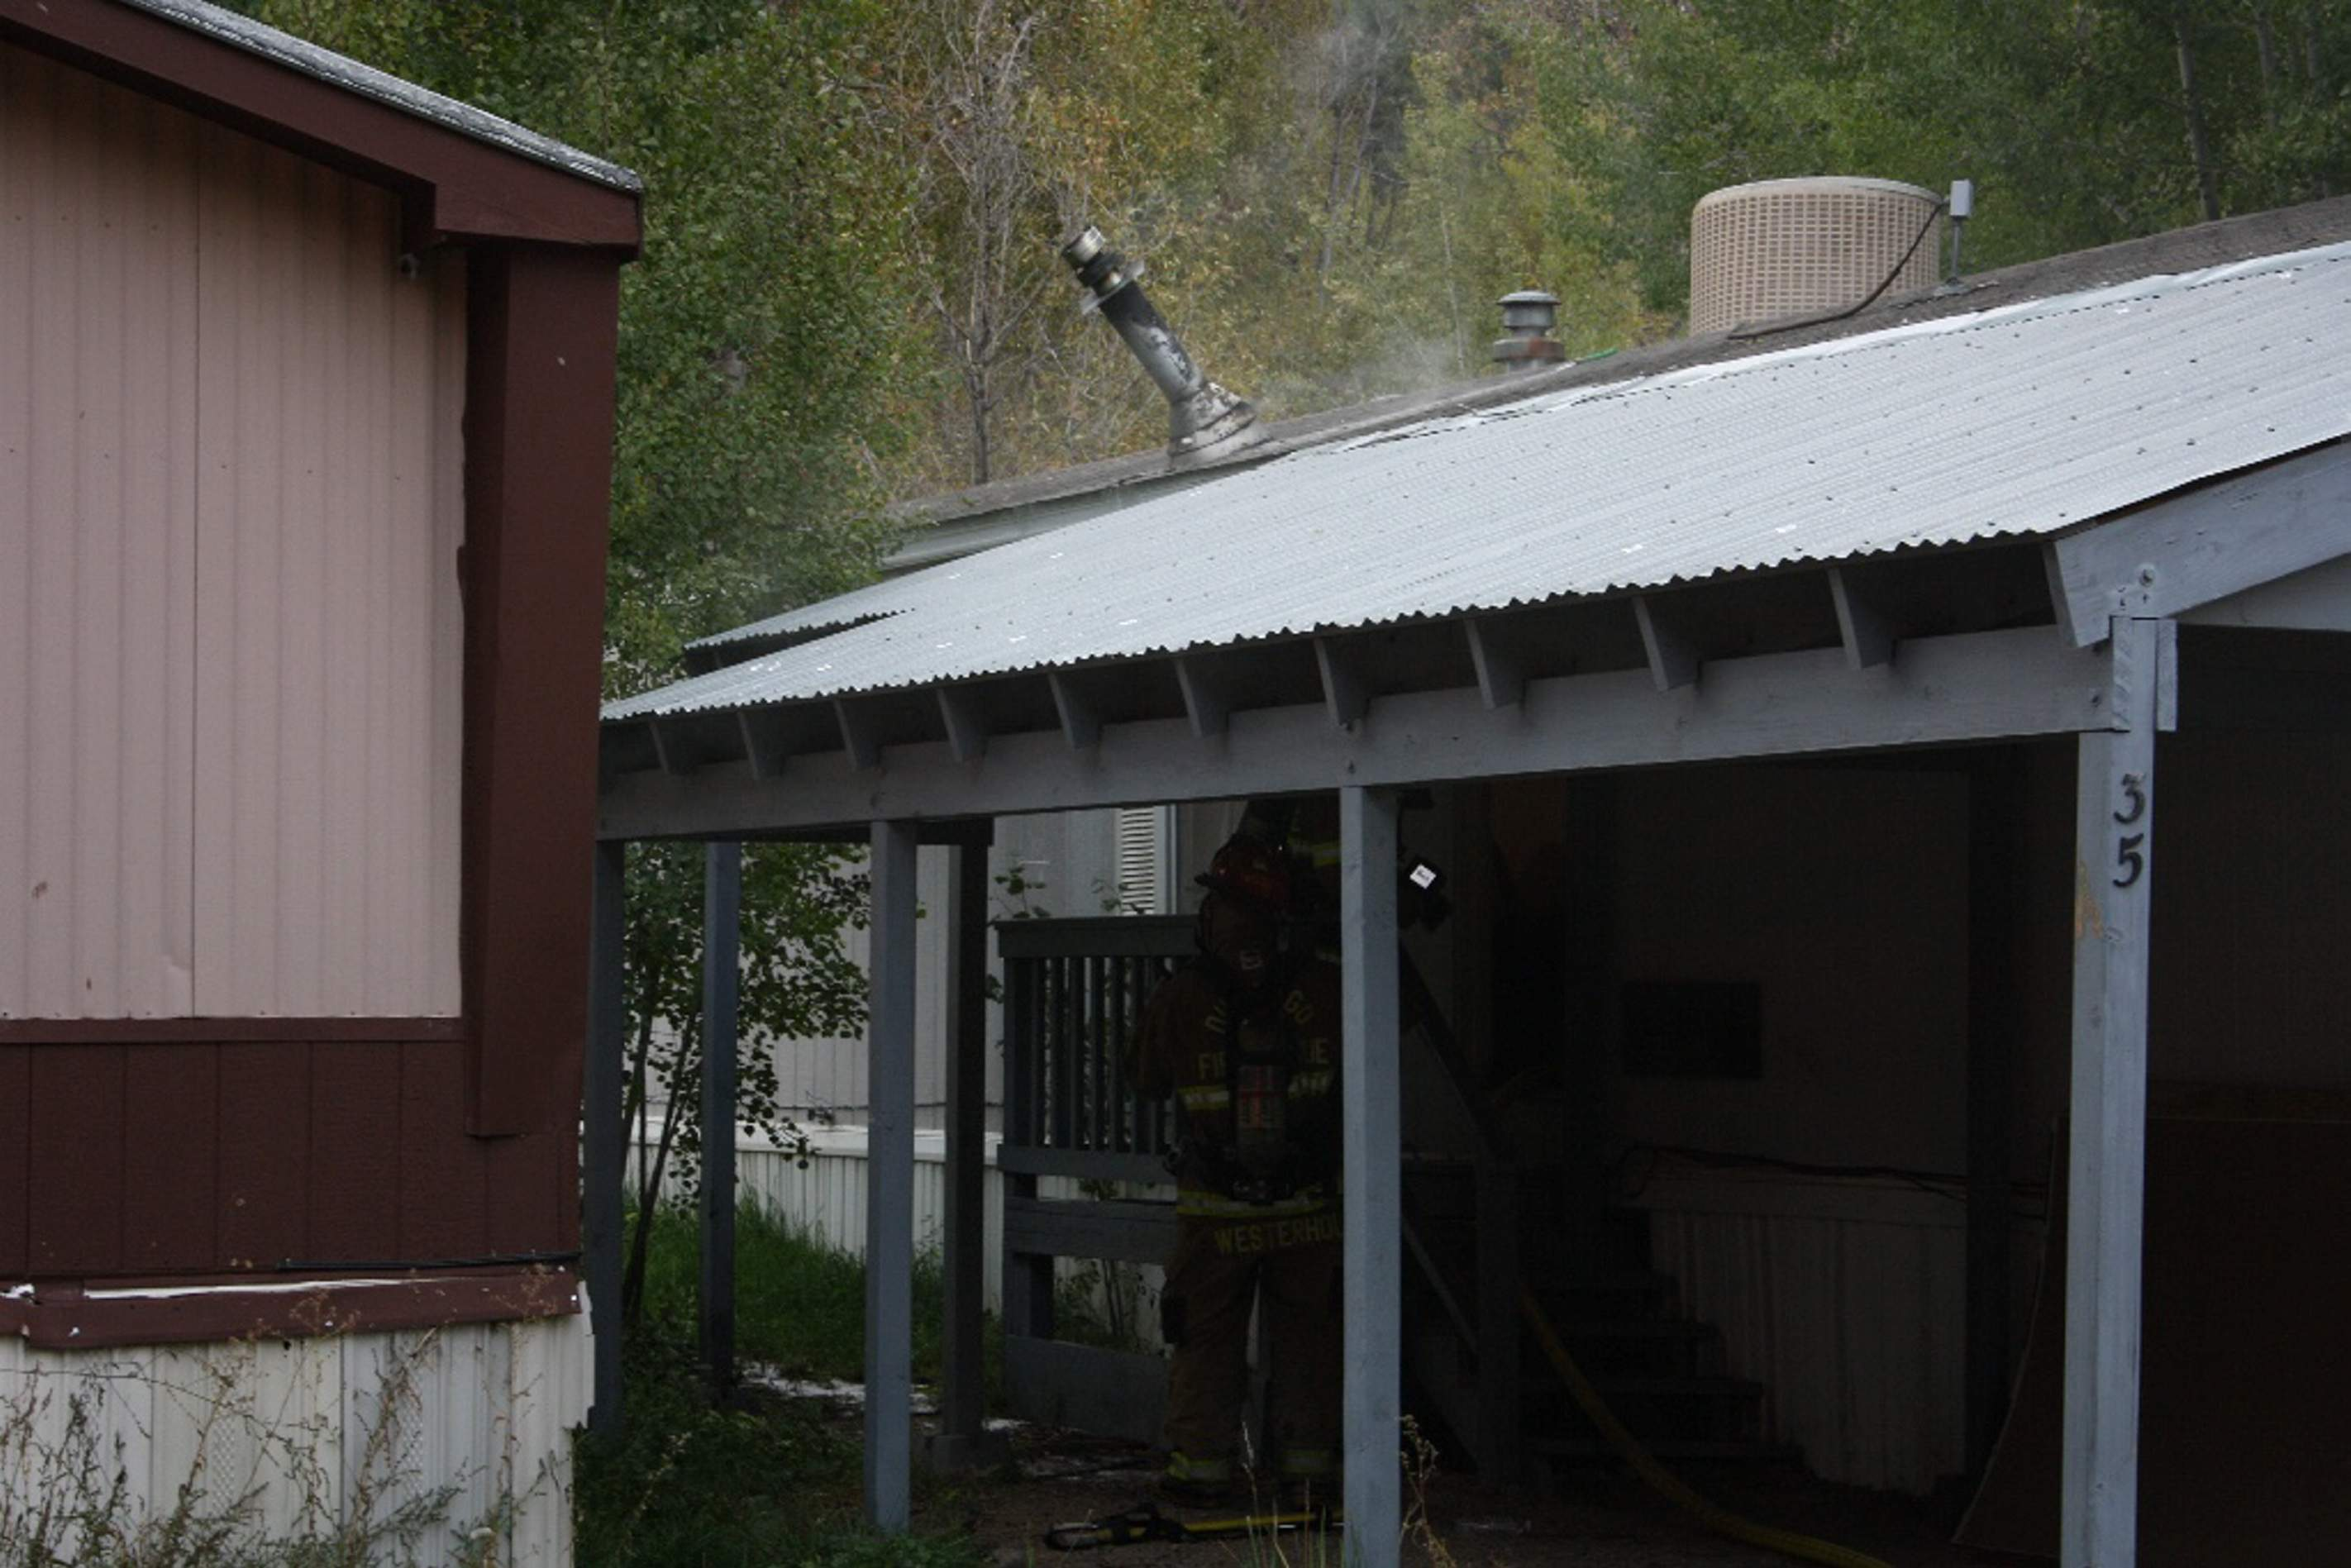 Wood stove blamed for mobile home fire west of Durango on wood stove in middle of room, wood stove tiny home, wood heaters for mobile homes, wood stove heat shield, wood stove heaters for home, wood stoves for manufactured homes, wood stove setups, wood burning stove installers, wood stove fire code, wood stoves installation requirements, wood burning stove specifications, corner fireplaces mobile home, wood fireplaces mobile home, pellet stove in mobile home, wood stove pipe, garage doors mobile home, install fireplace in existing home, wood pellet stoves, wood stove insert mobile home, wood stoves for mobile homes,